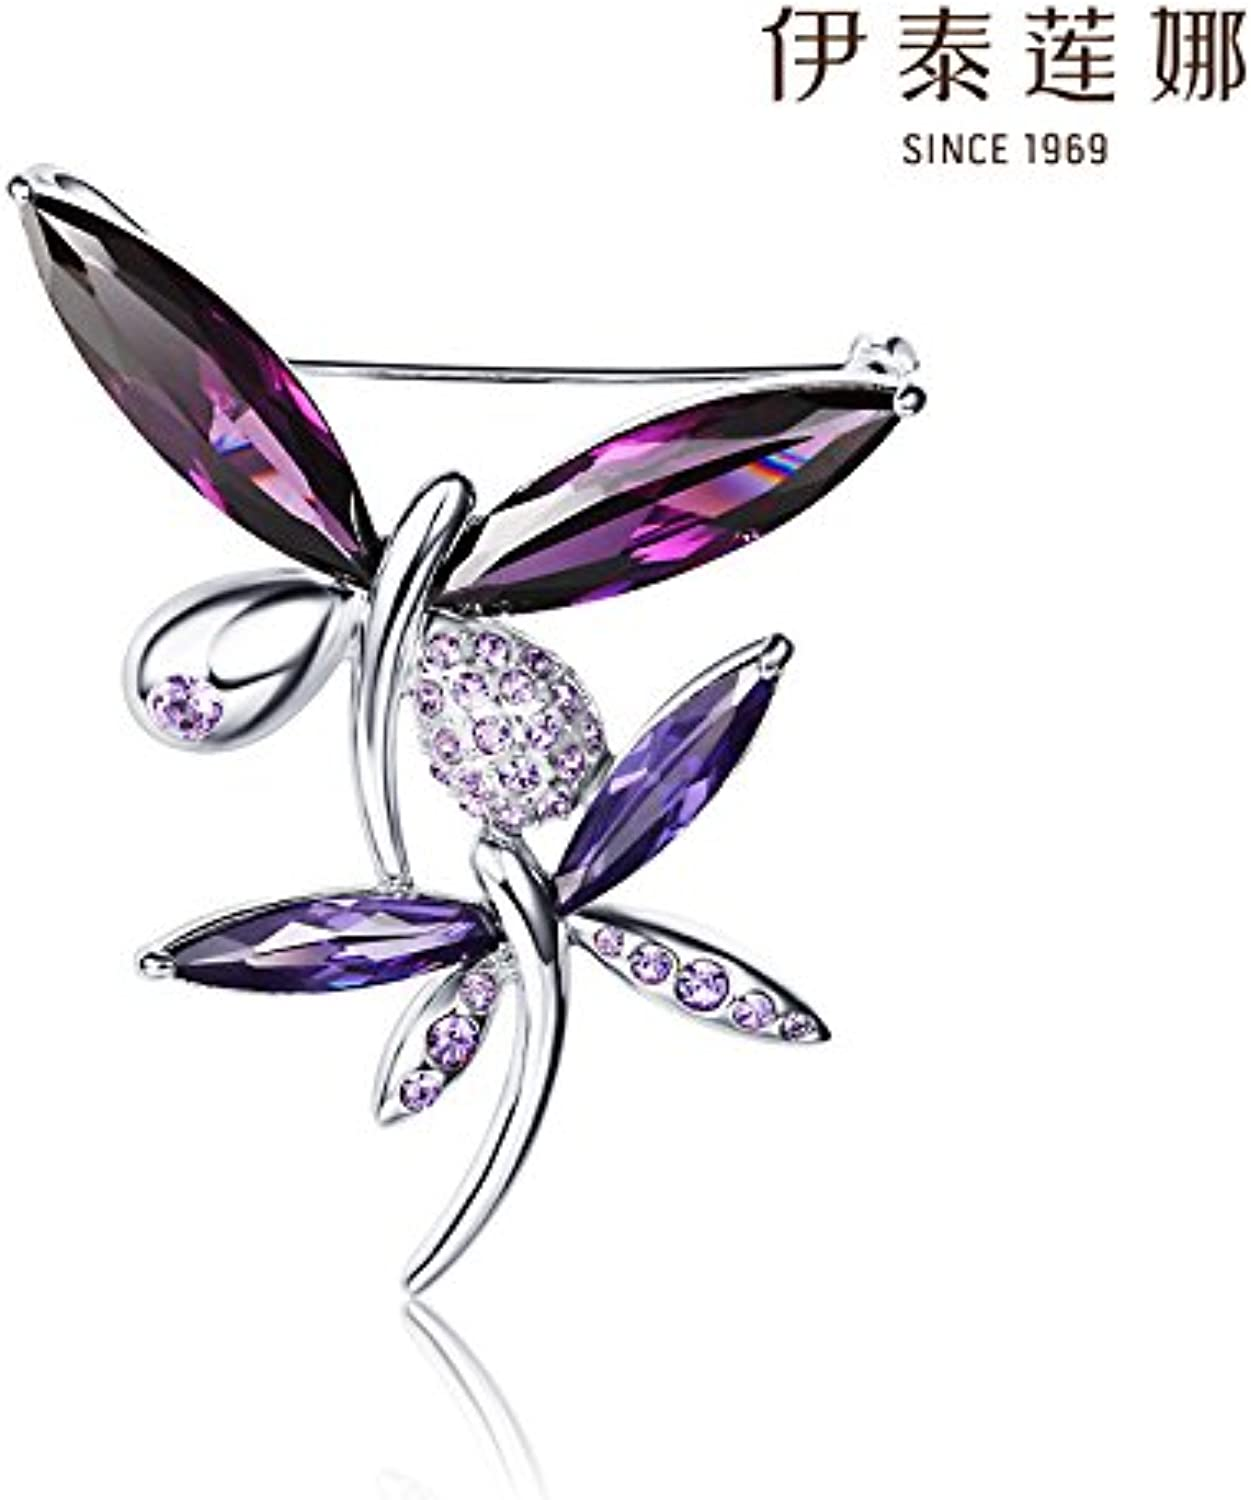 Yitai Ms Crystal Brooch pin Badge Beauty Butterfly Brooch pin Badge Austria Elena Fans with Direct Elegant Evening Dress Accessories